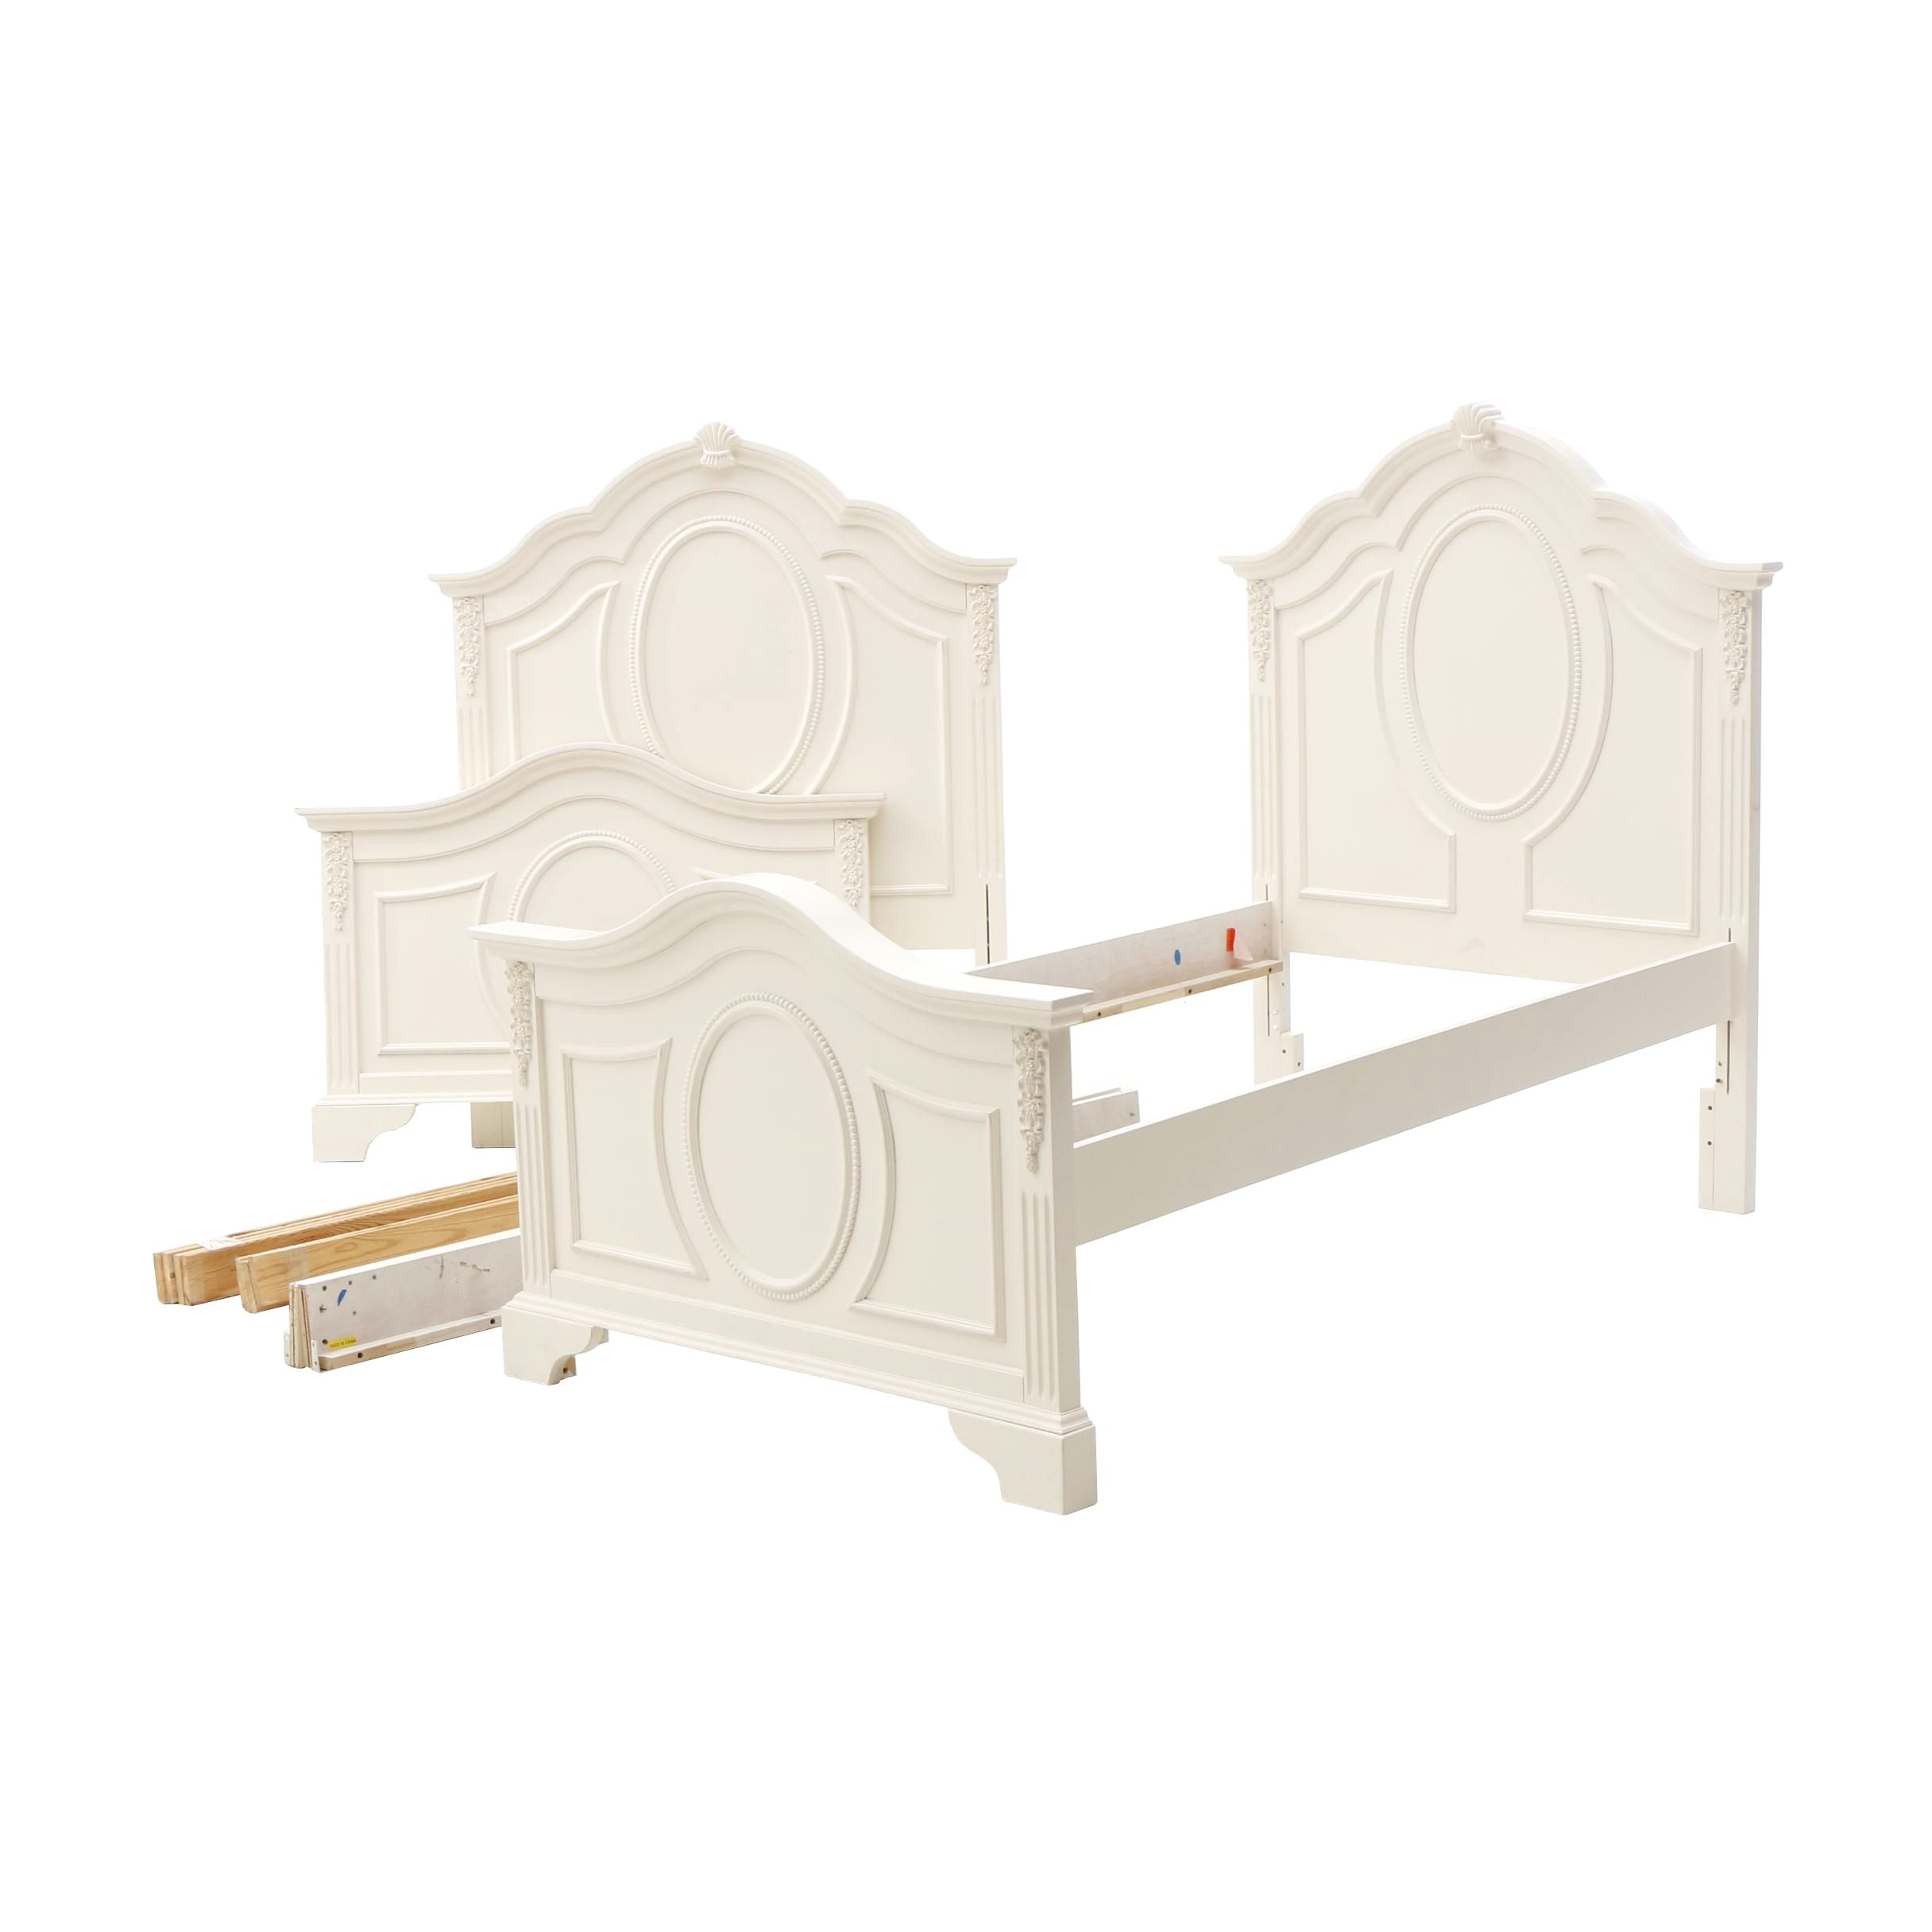 Twin Beds in White by Furniture Fair